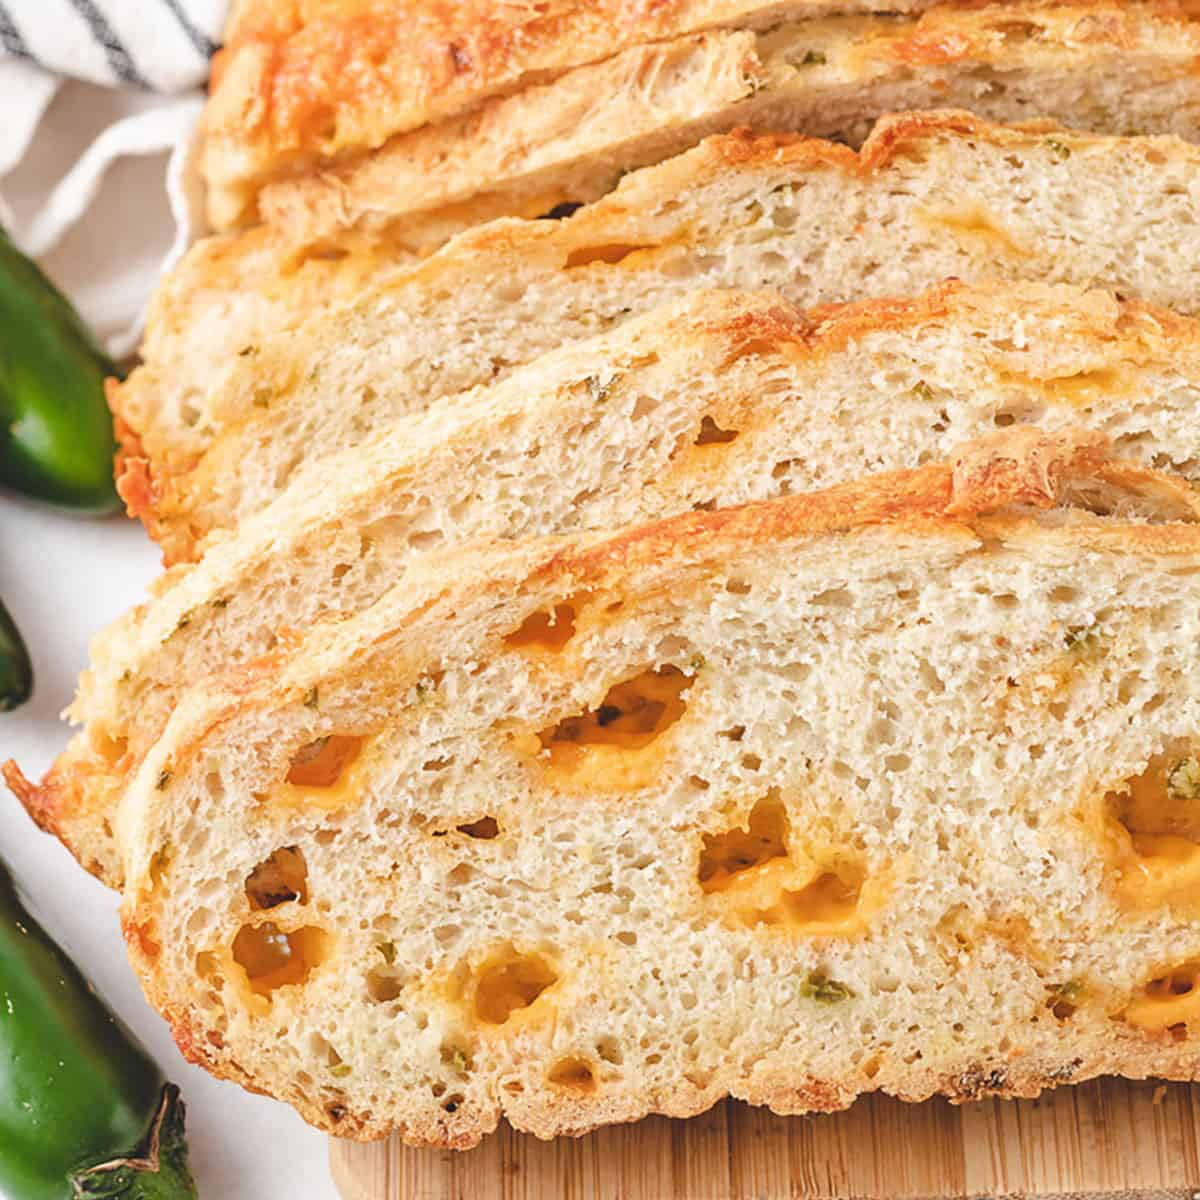 Multiple slices of the jalapeno cheese bread.